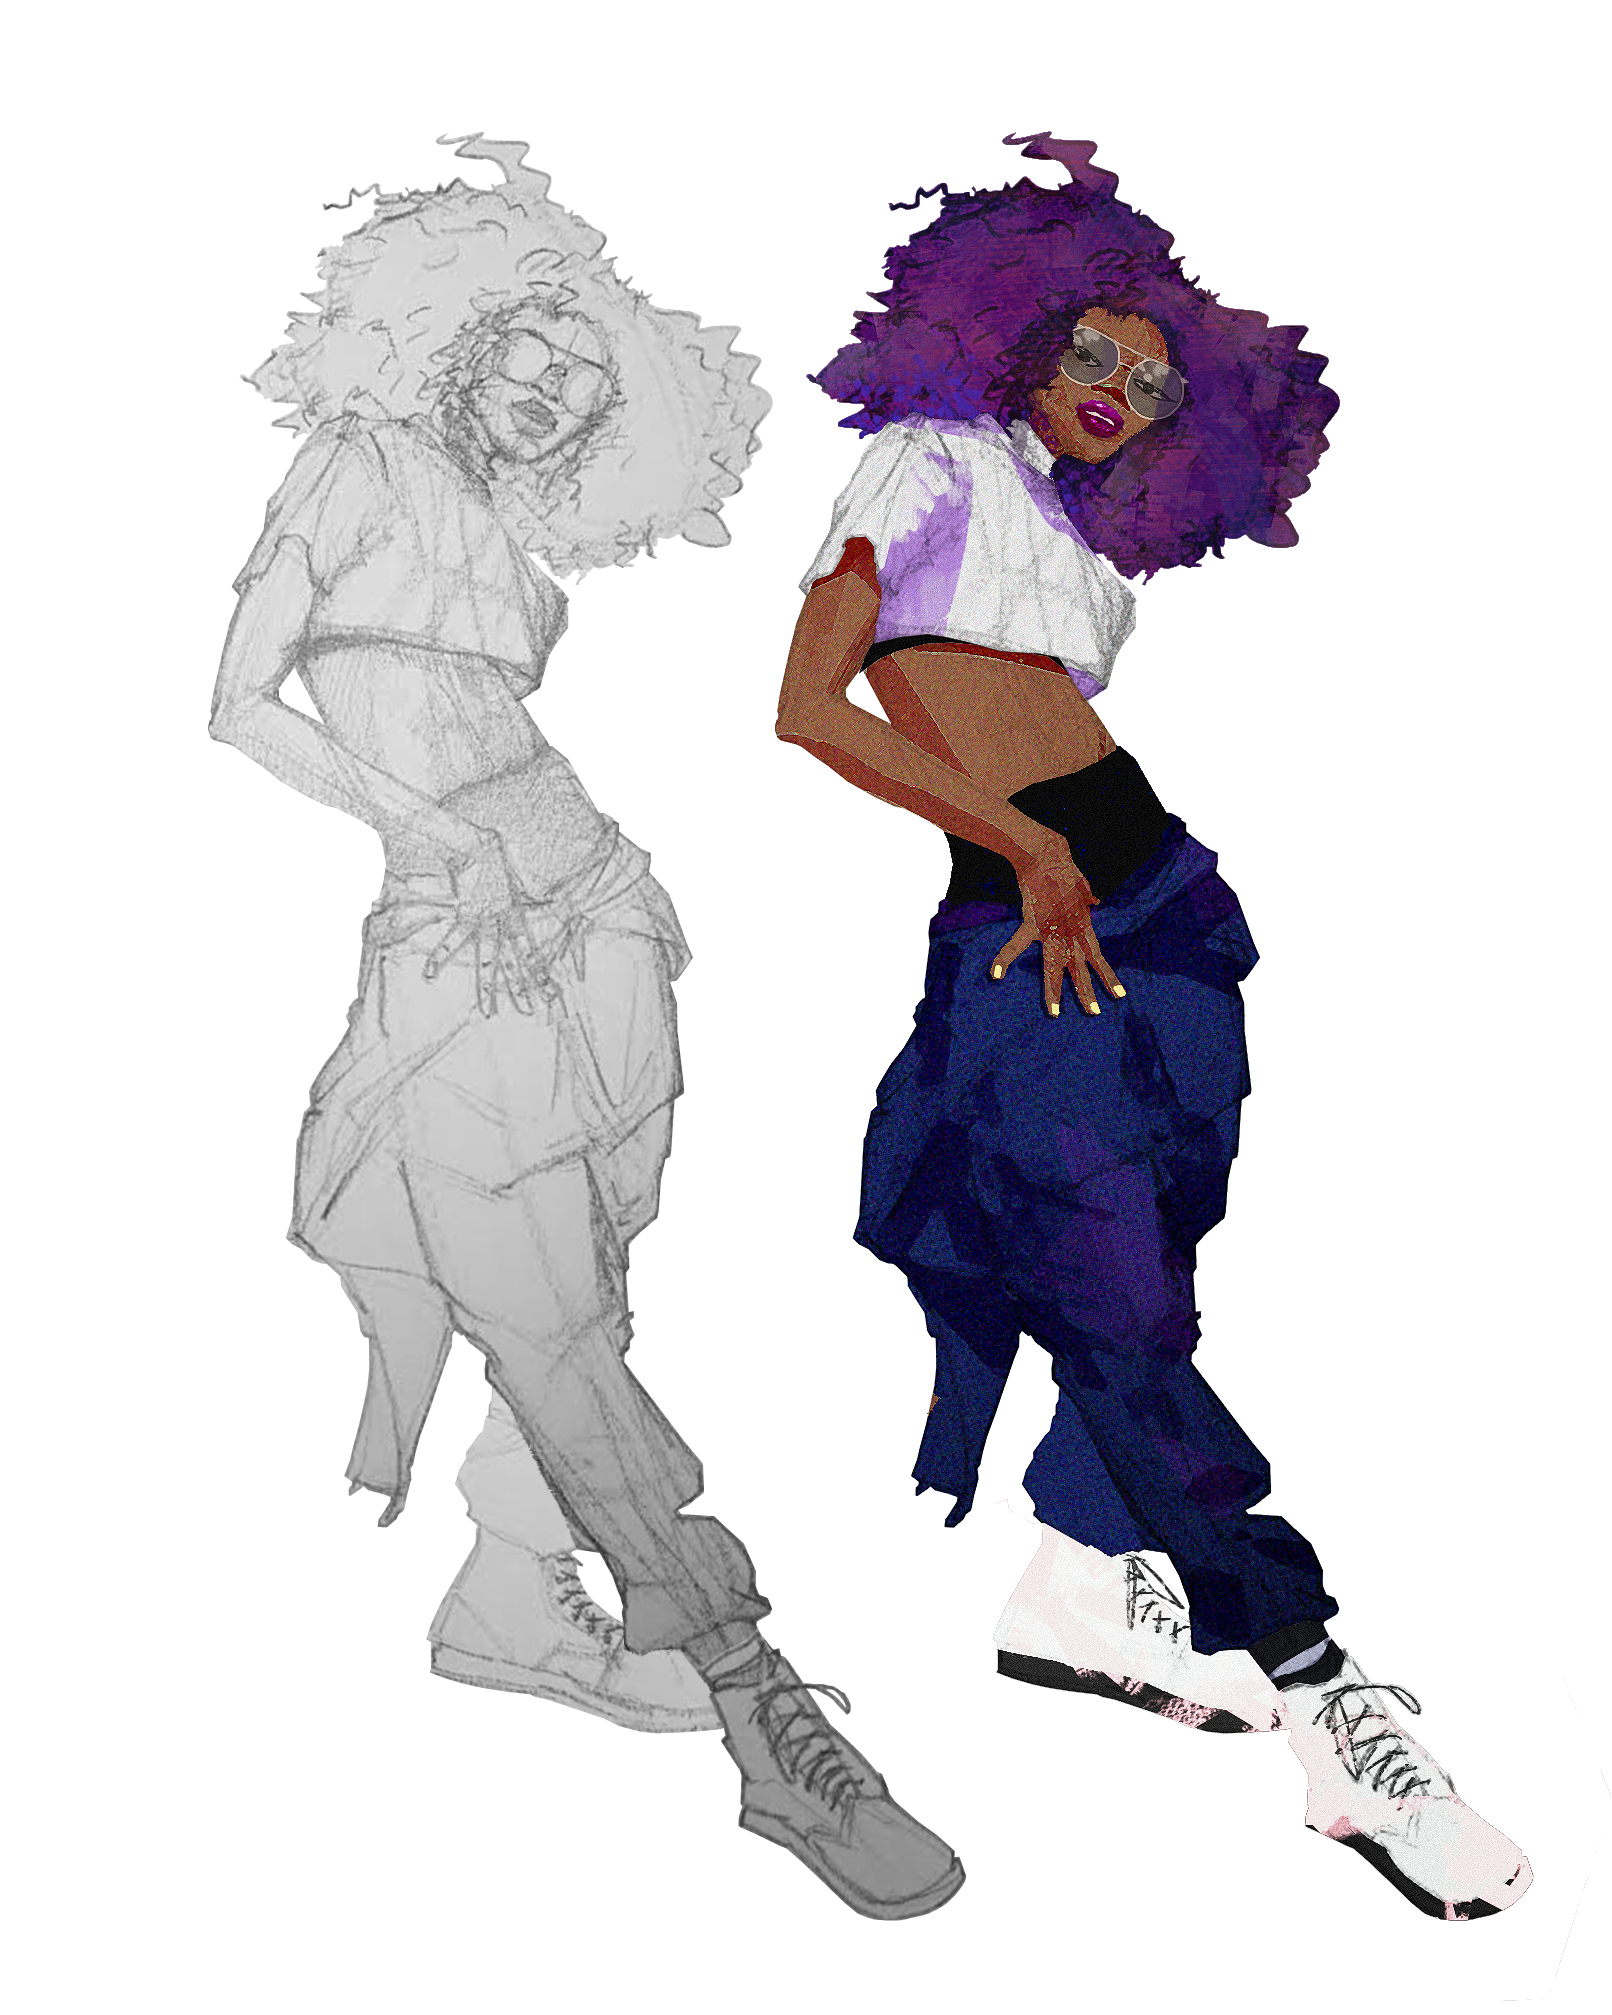 streetfashion_afropunk_1 process.jpg